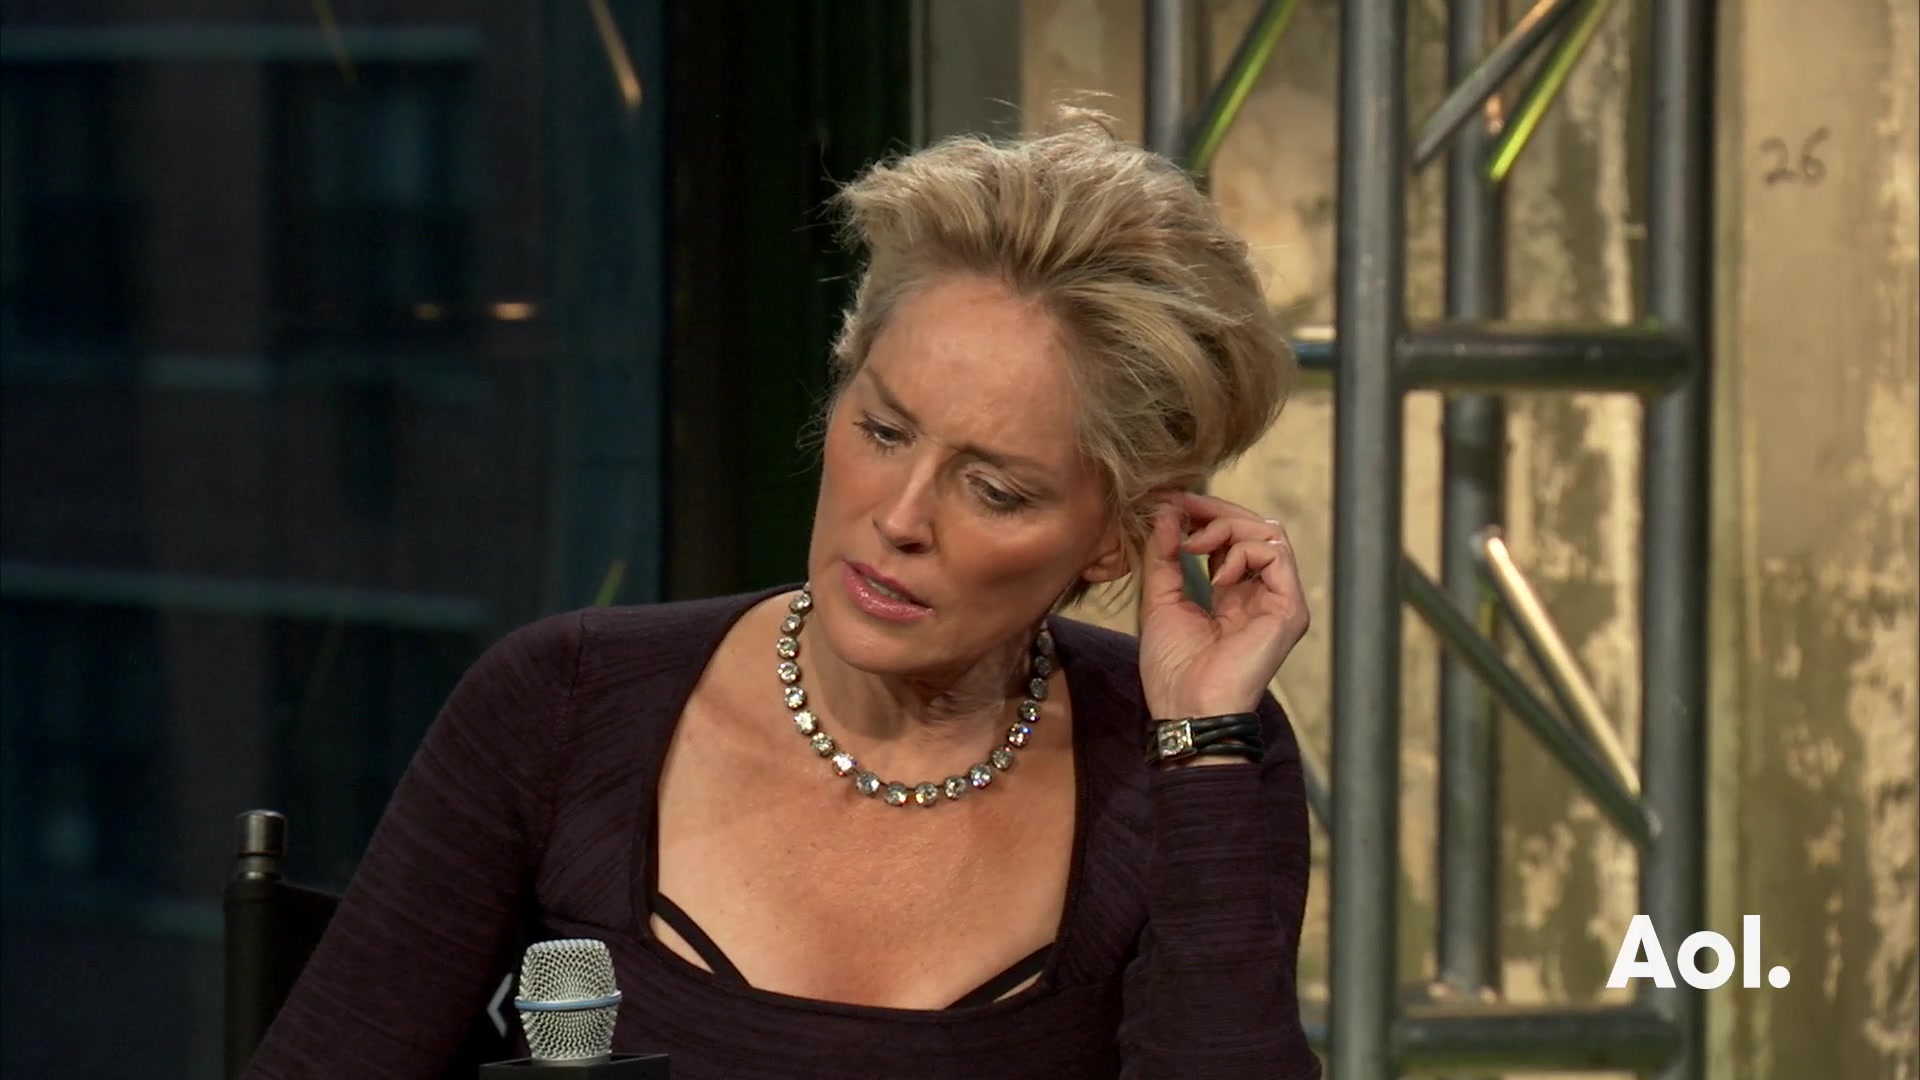 Sharon Stone on the Gender Pay Gap